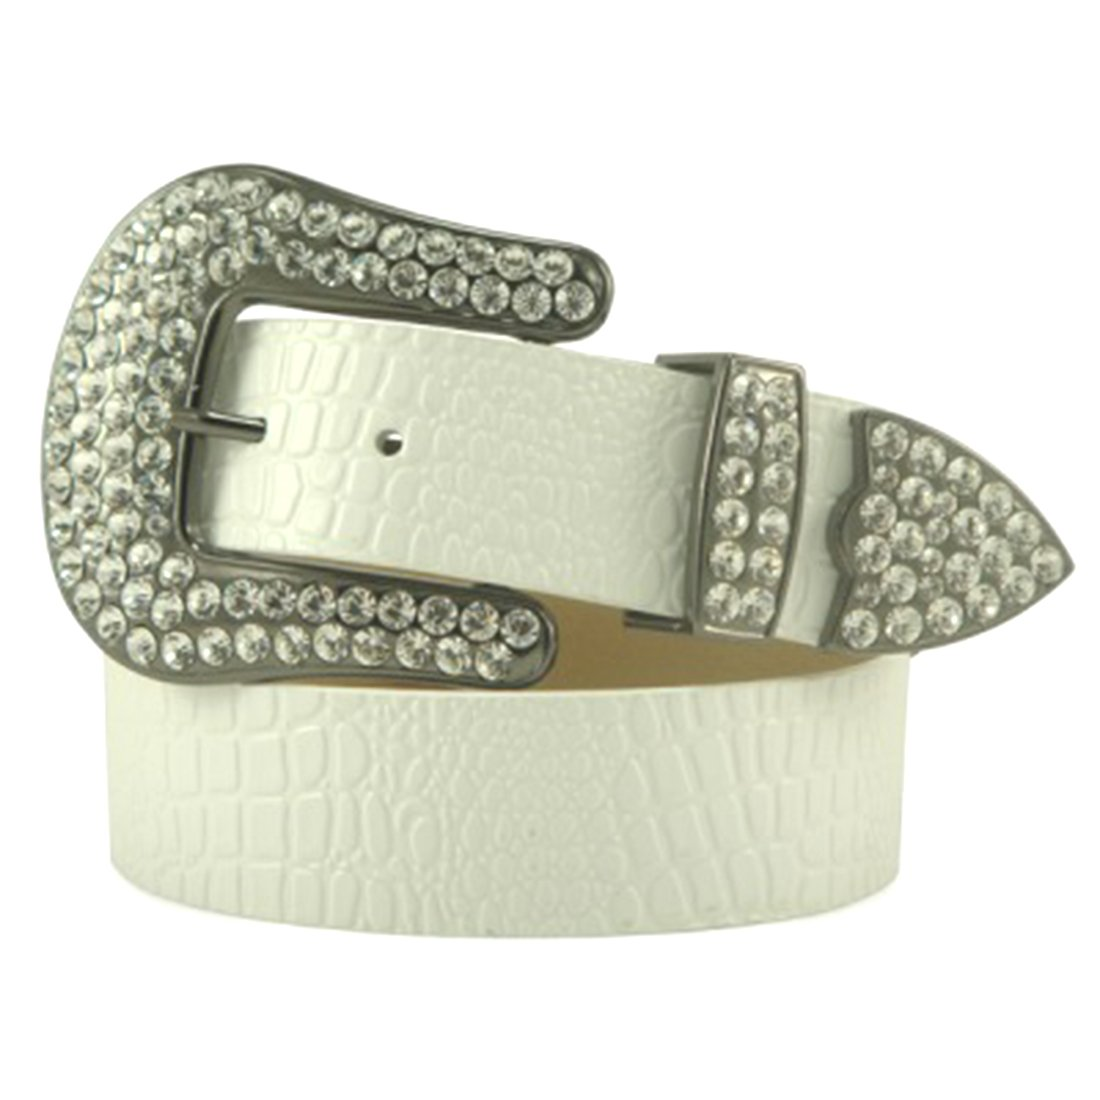 White Patent Leather Belt in a Crocodile Pattern, Clear Crystal, Size M/L